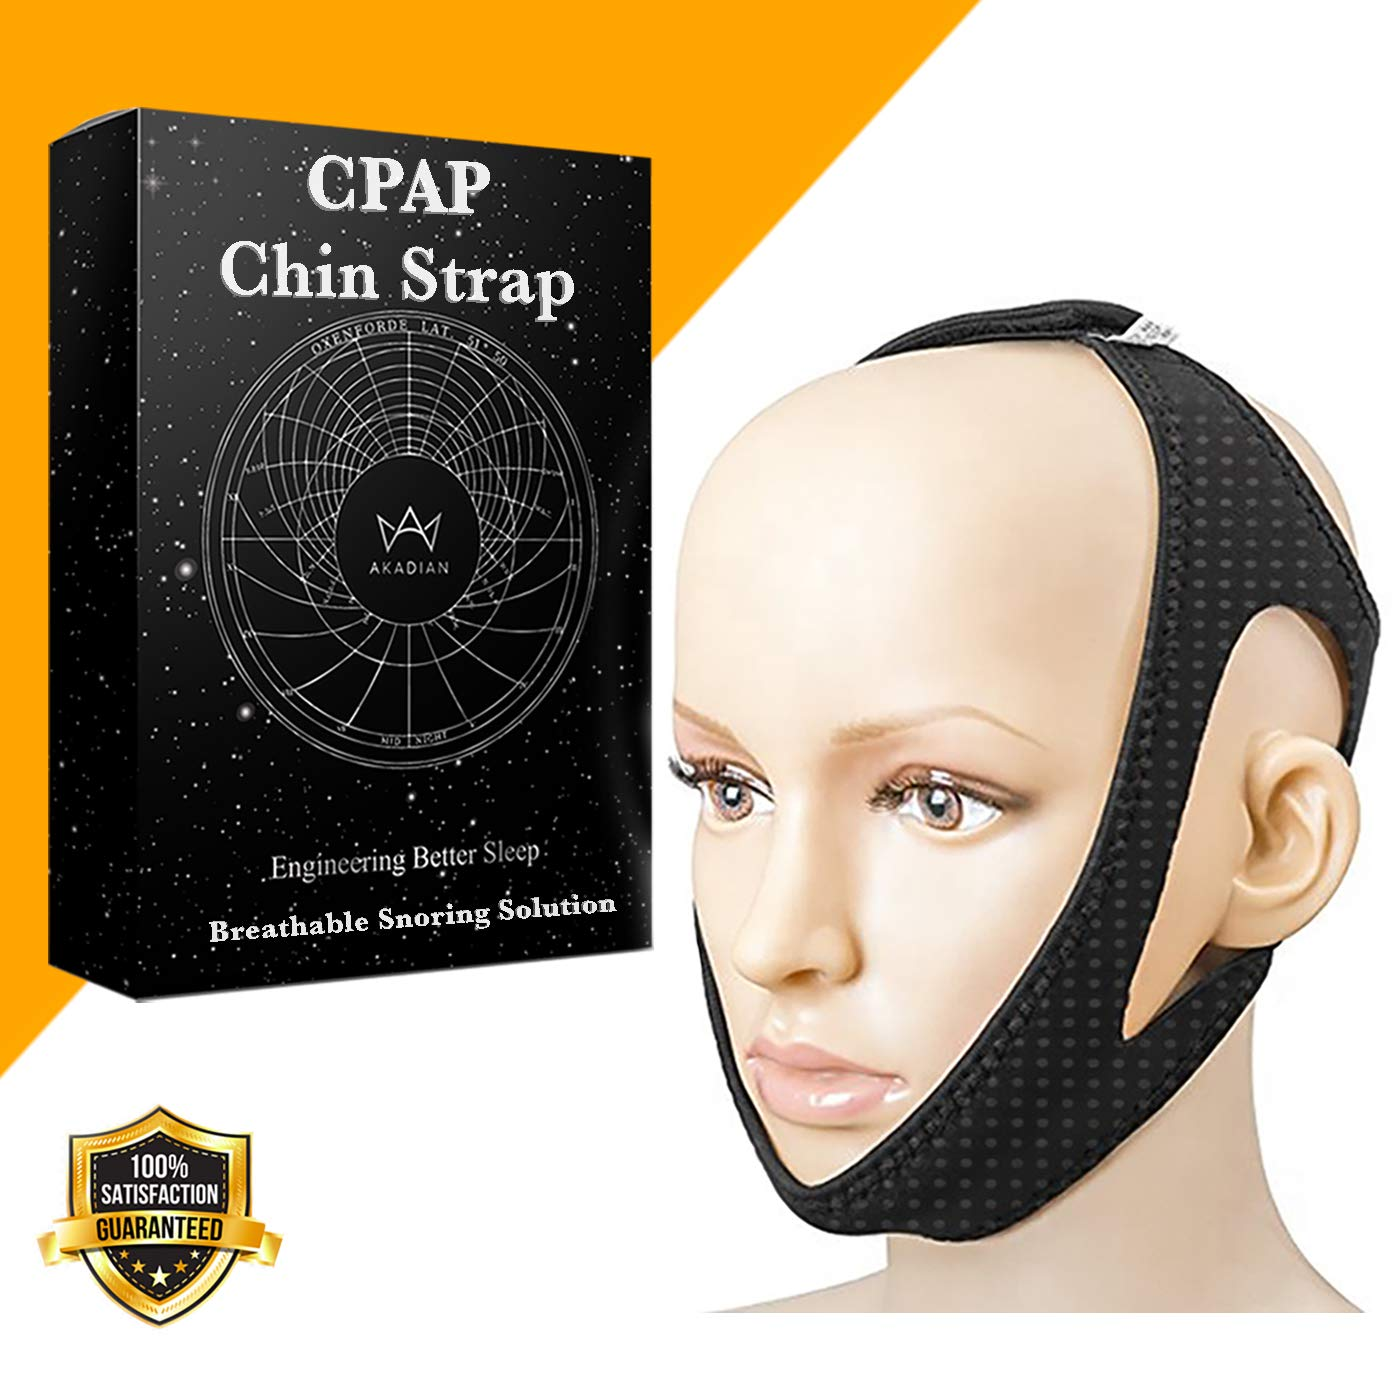 CPAP Anti-Snoring Chin Strap - Night Snore Stopper - Small to Medium Size - Sleep Solution Aid Device for Women Men Works for Bad Breath - Keeps Mouth Closed by Akadian